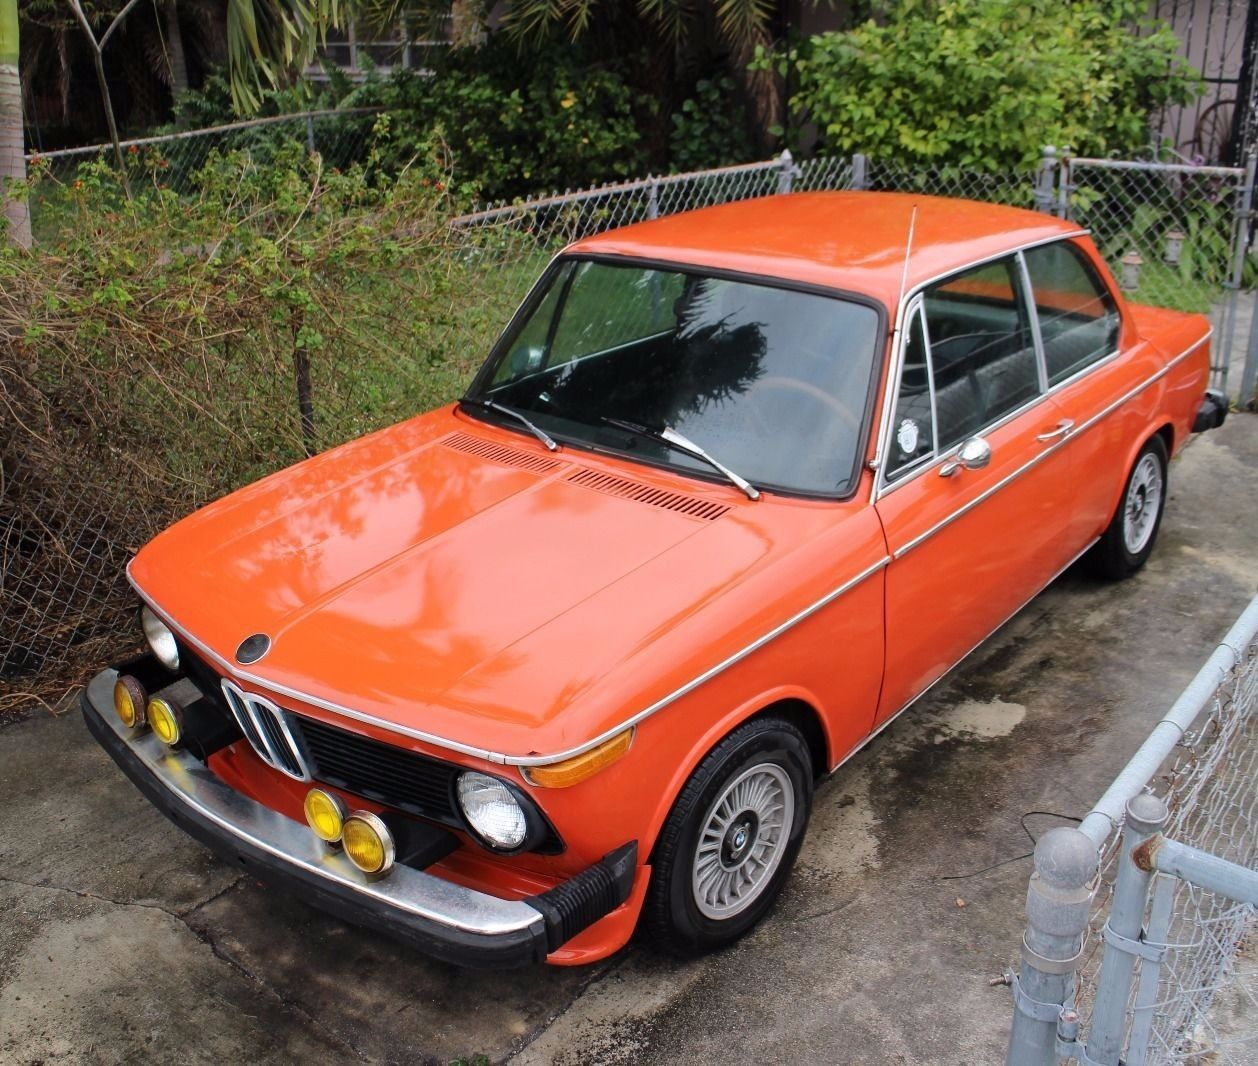 76 Bmw 2002 Modified: Project 76 2002